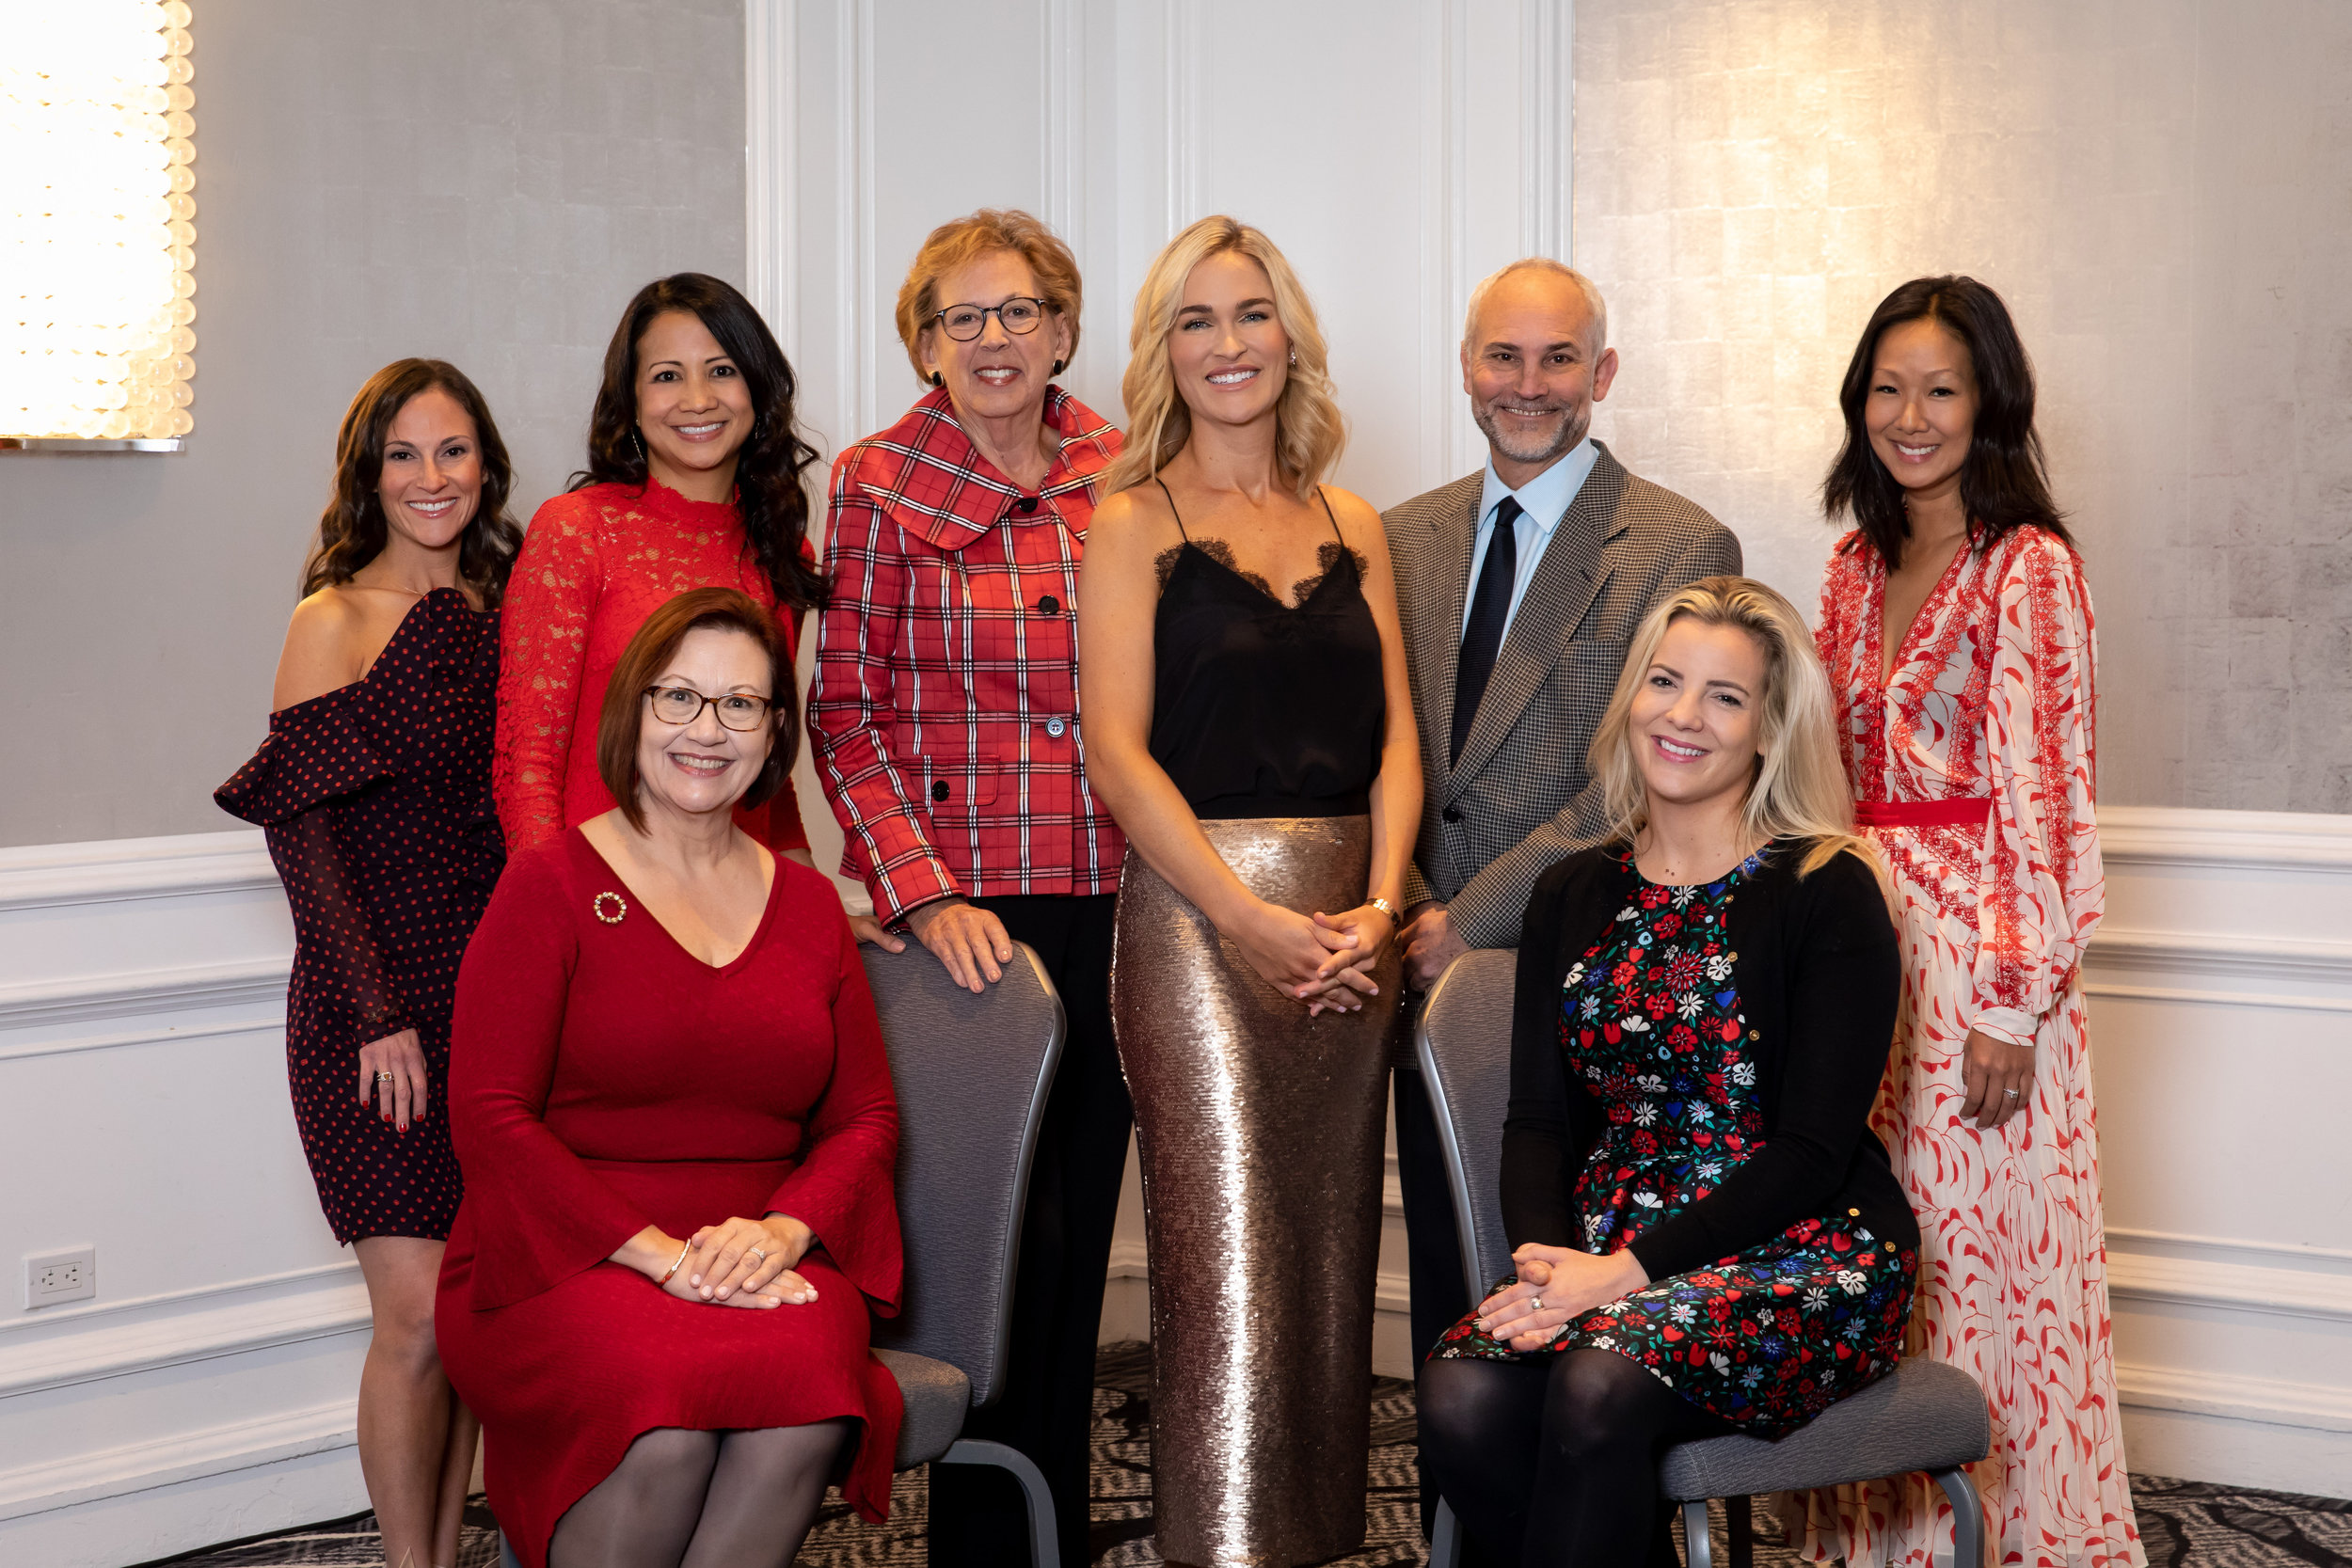 019_Catherine Hall Studios_CHG Holiday Boutique and Luncheon December 2018.jpg